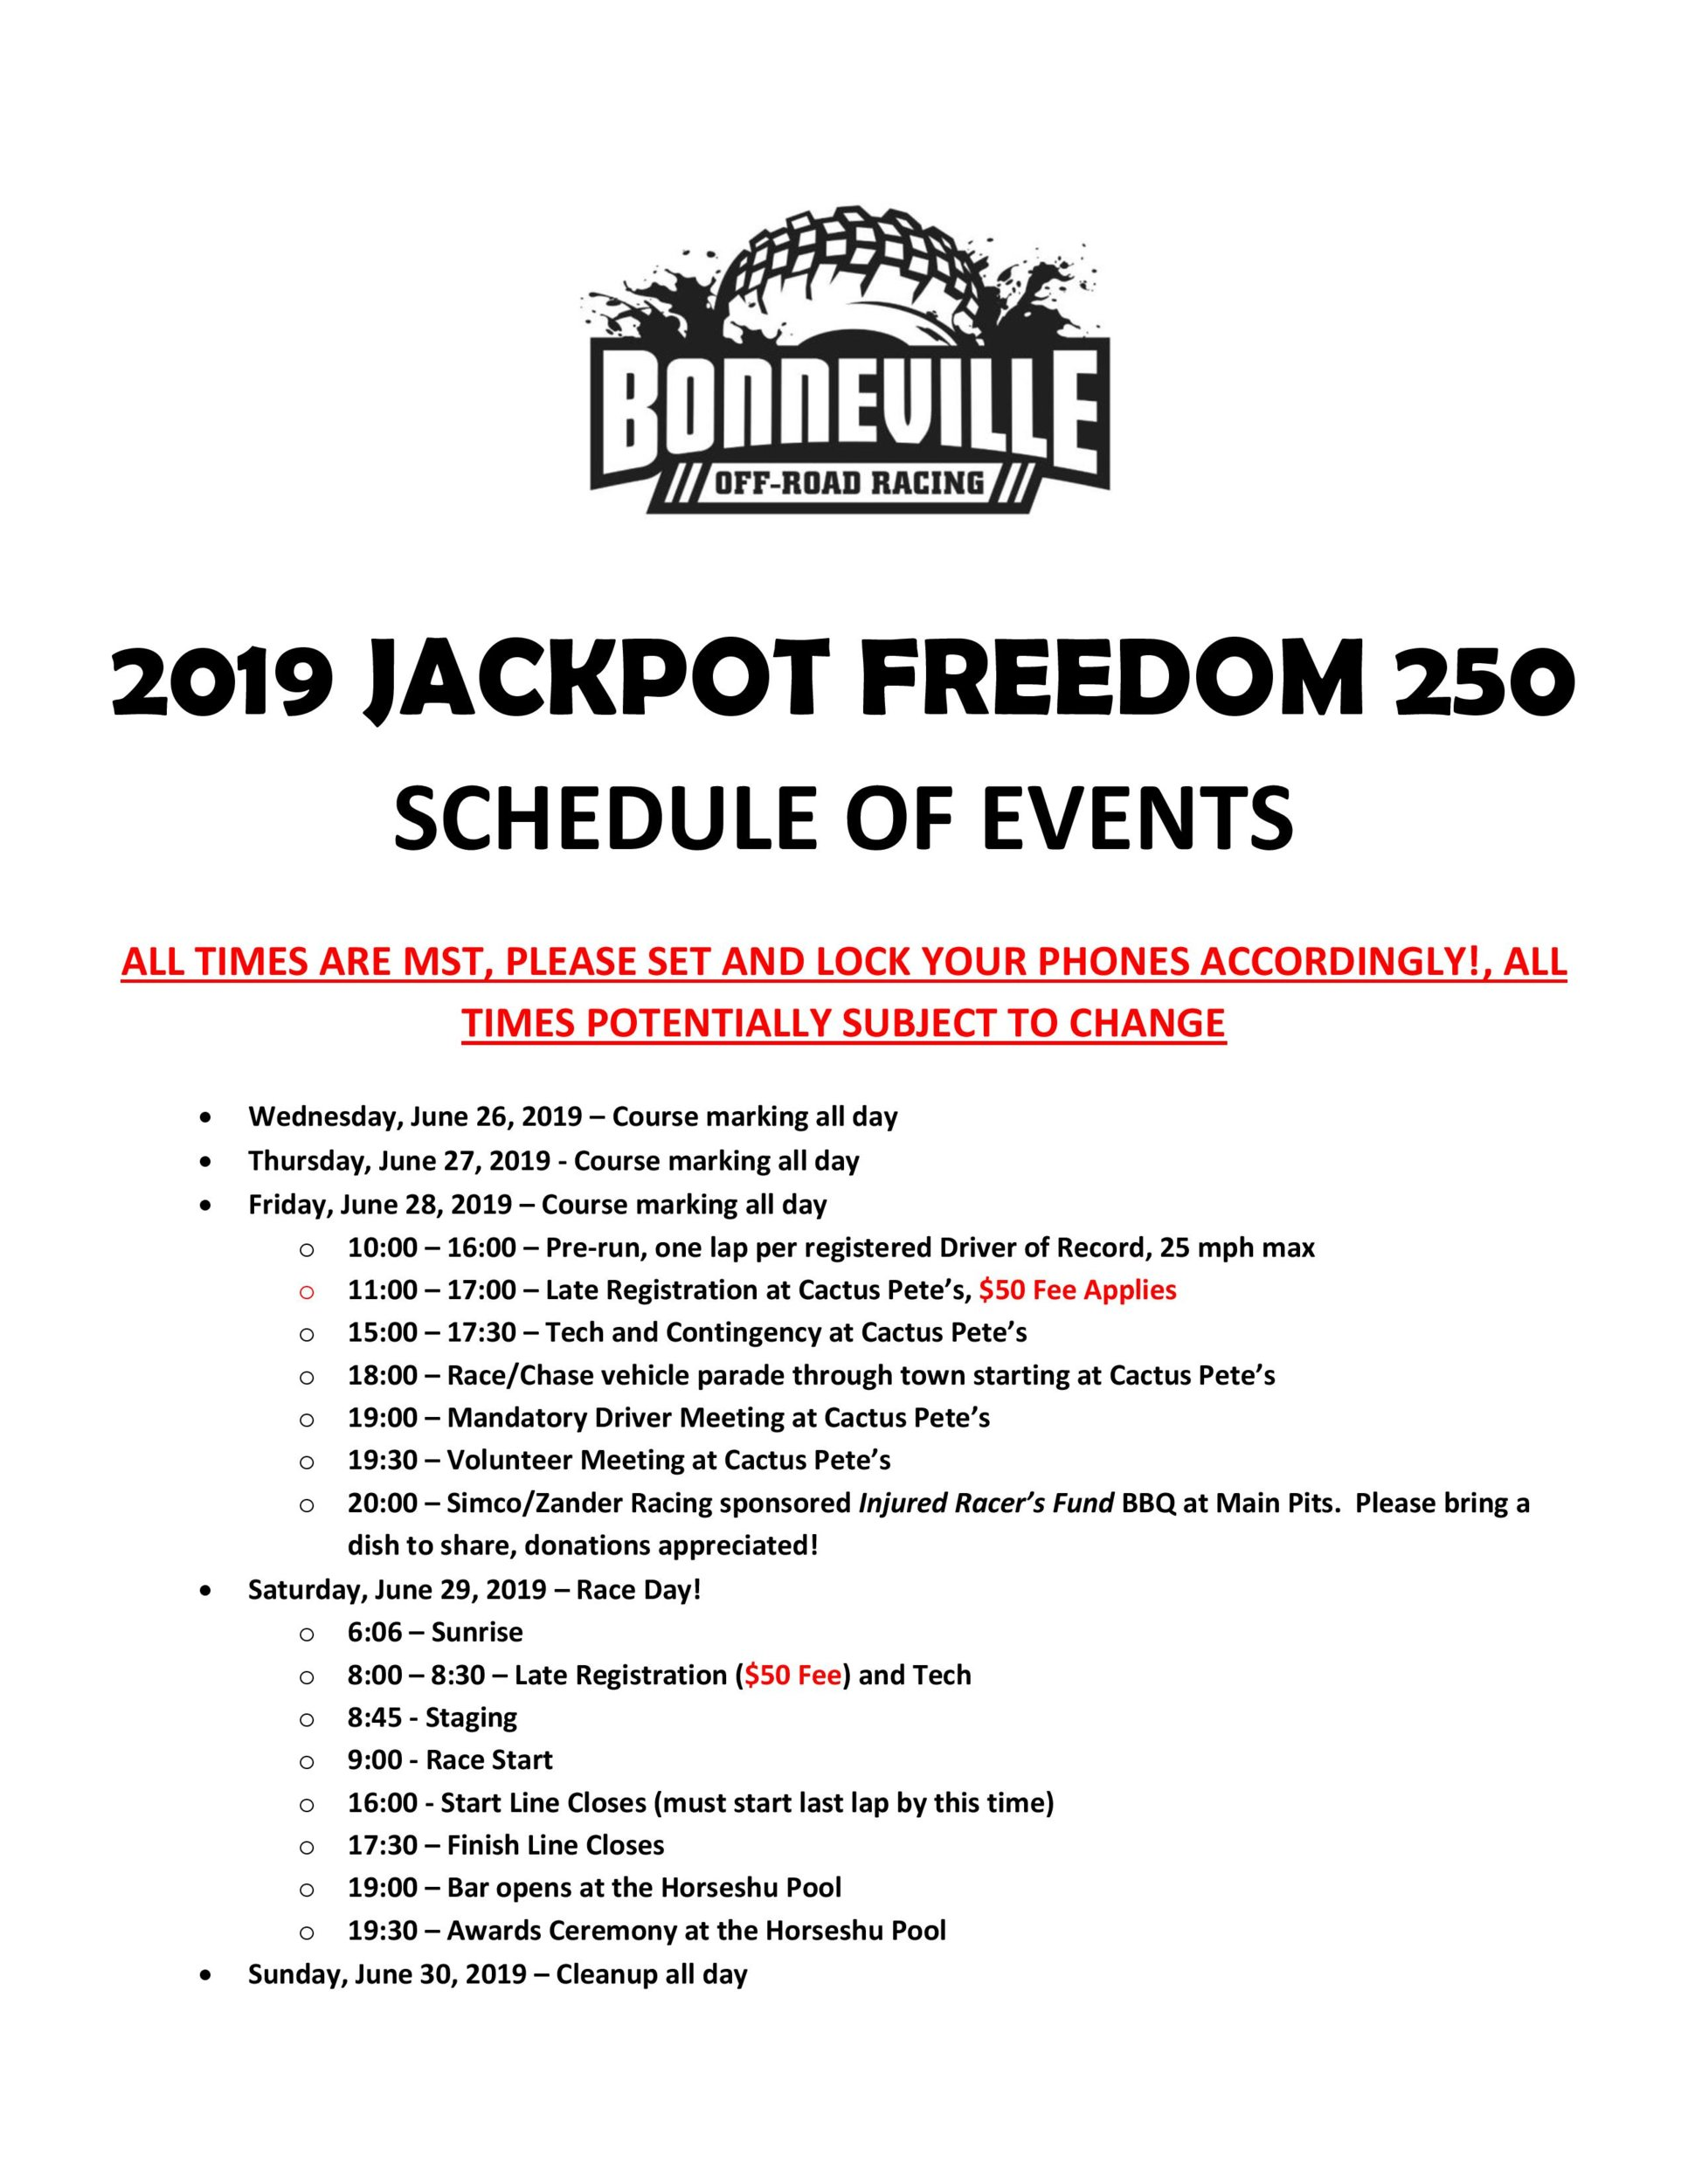 2019 Jackpot Freedom 250 Schedule of Events.jpg